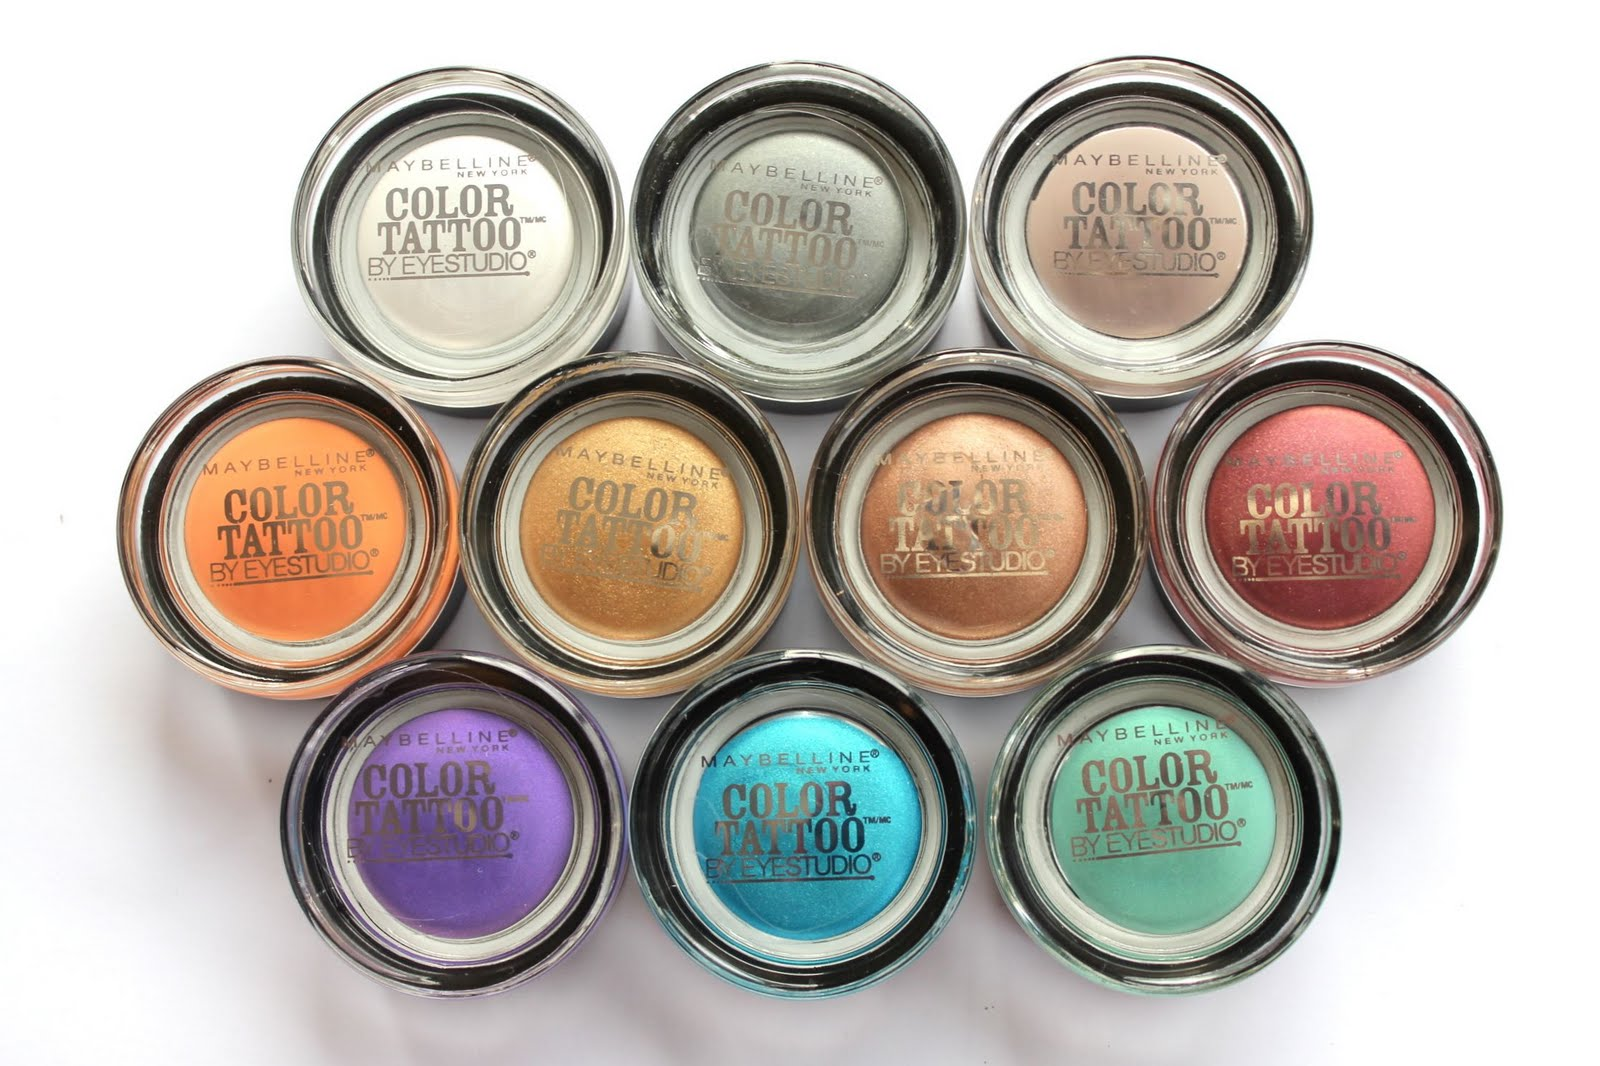 Review: Maybelline Color Tattoo 24hr - Adjusting Beauty